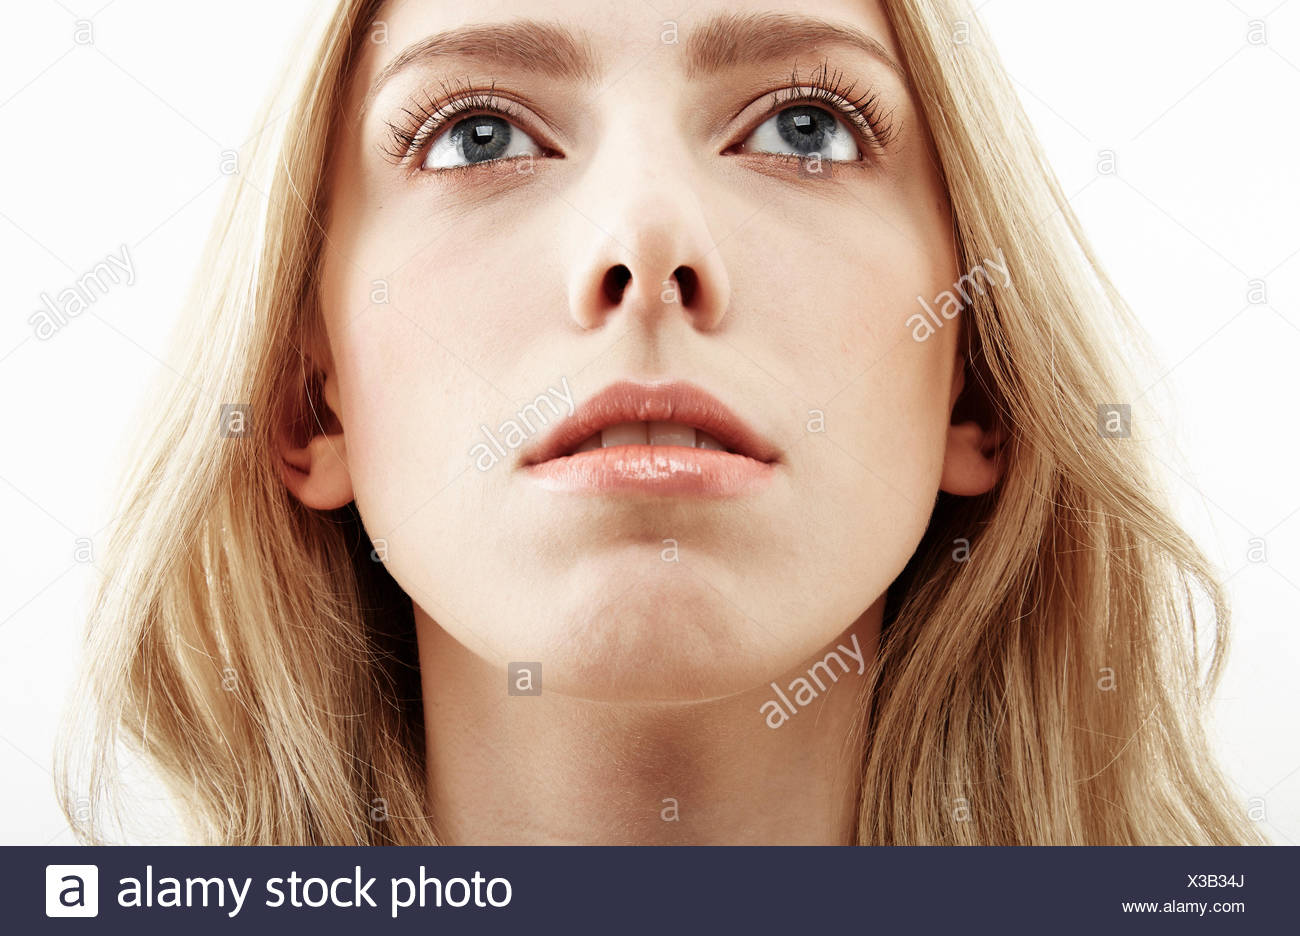 Cropped close up studio portrait of young woman gazing upward - Stock Image